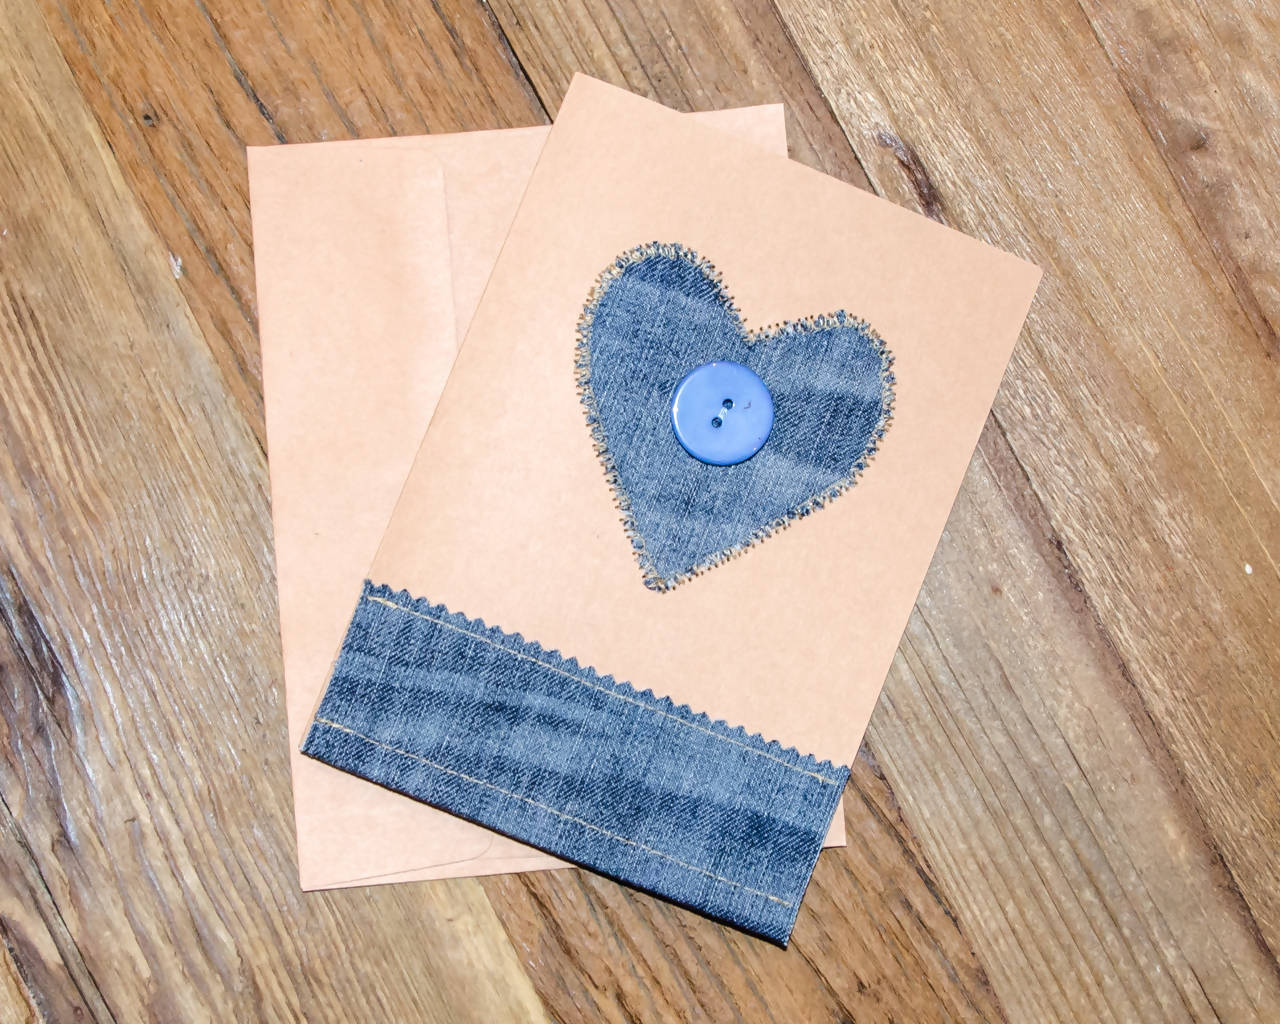 Heart-shaped, Denim Greeting cards - Handmade - Fabric on Paper / Blank Inside for any occasion. Package of 2